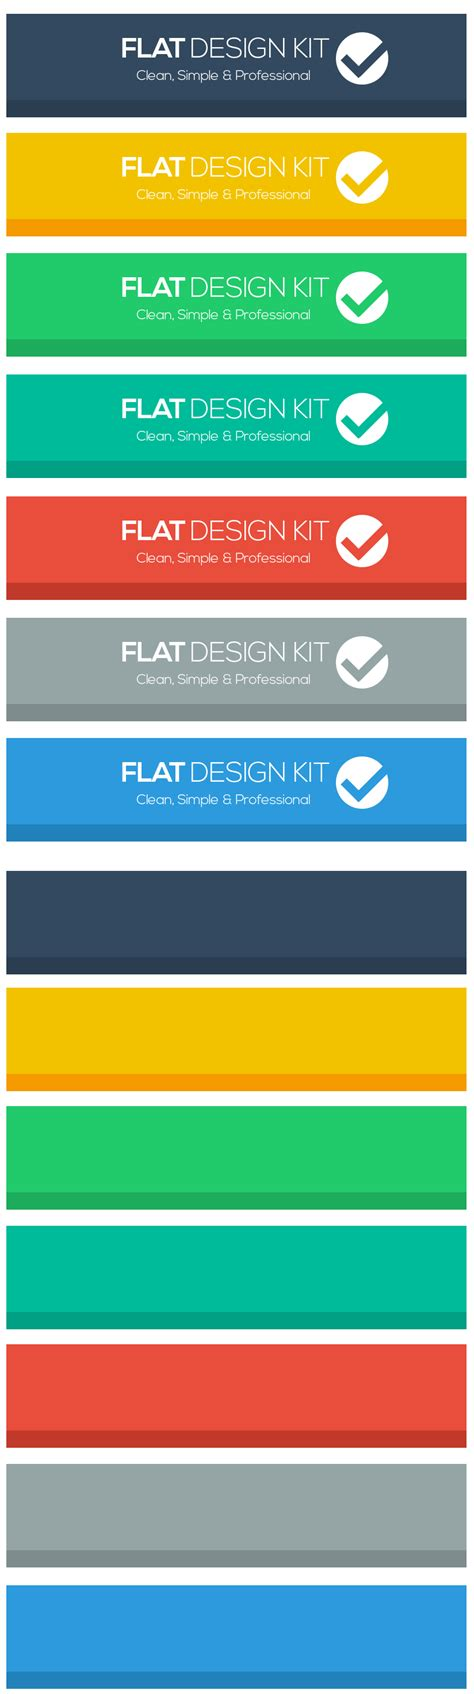 header design kit yours free flat design kit buttons and header graphics